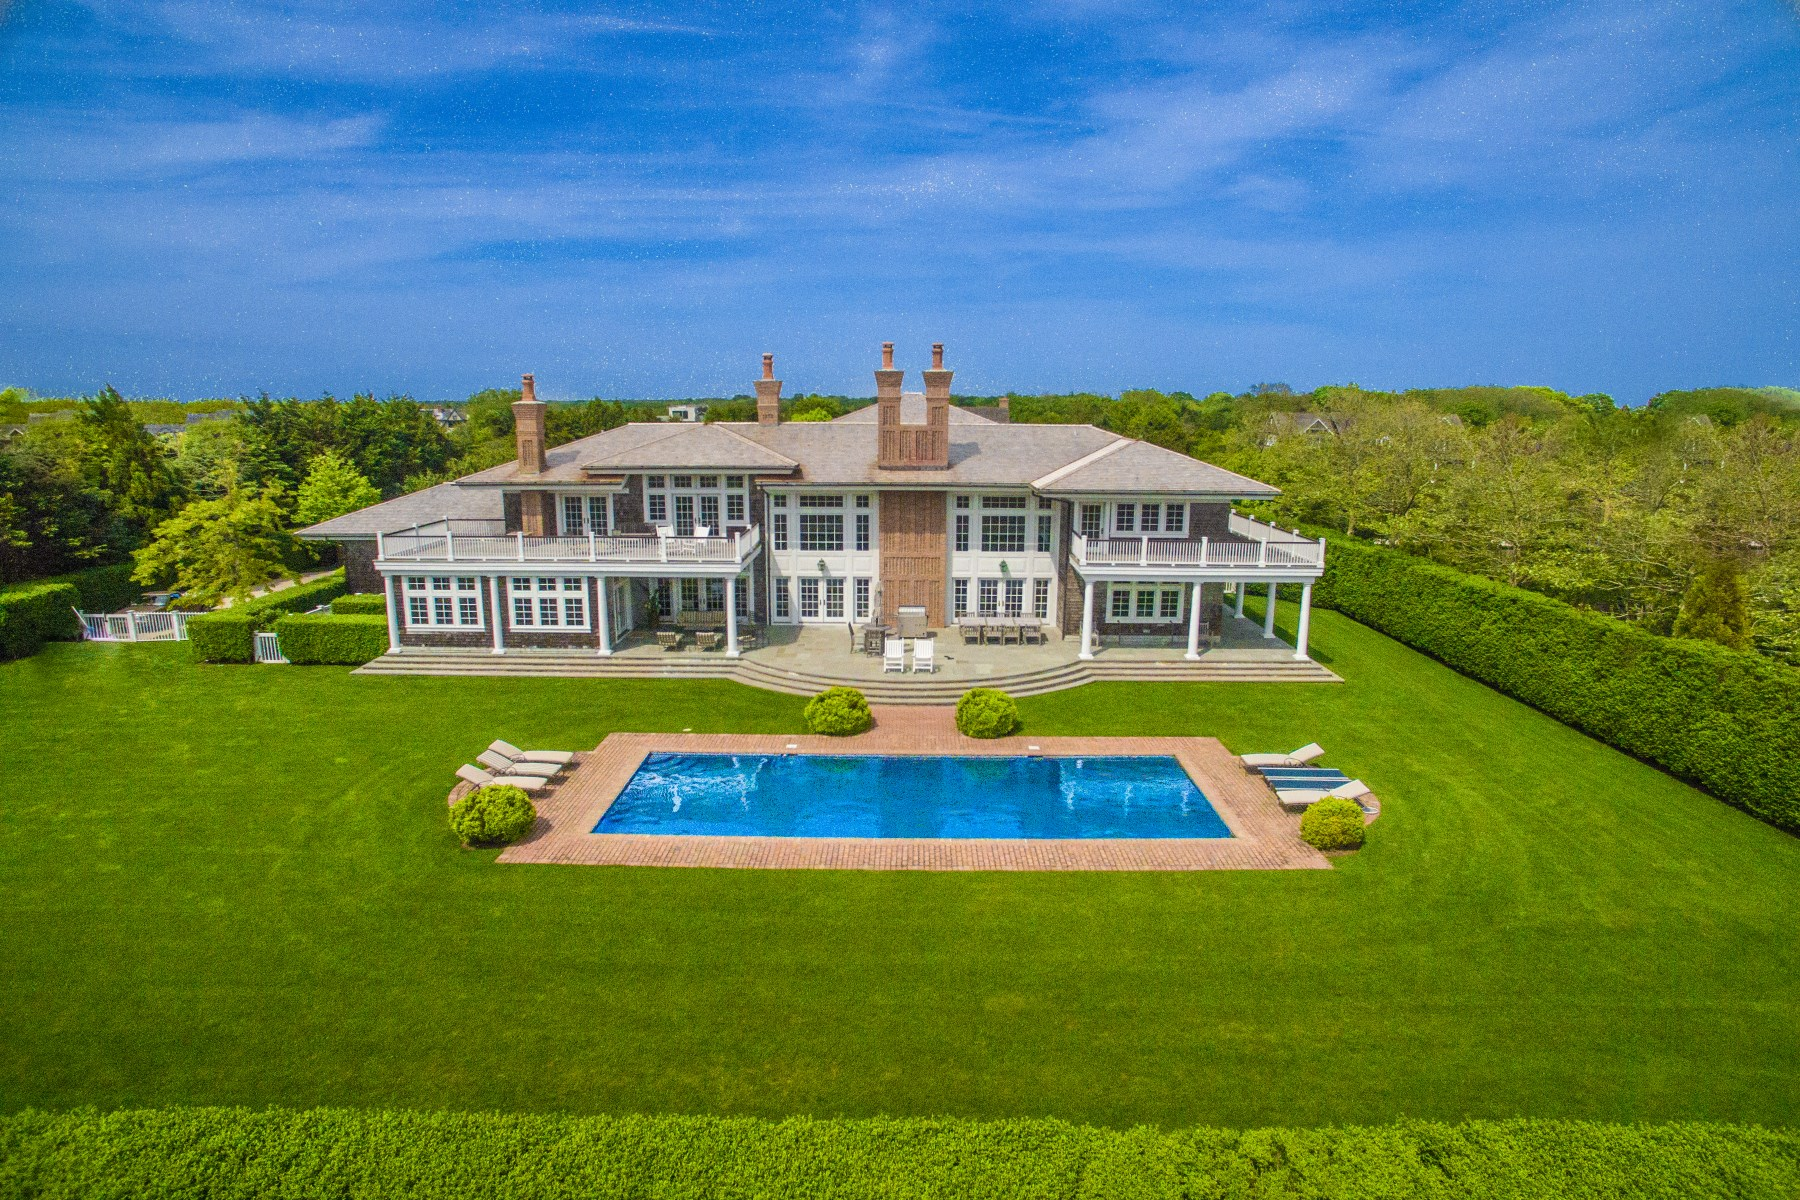 Additional photo for property listing at Sagaponack Ocean Views 19 Sagg Pond Sagaponack, New York 11962 United States